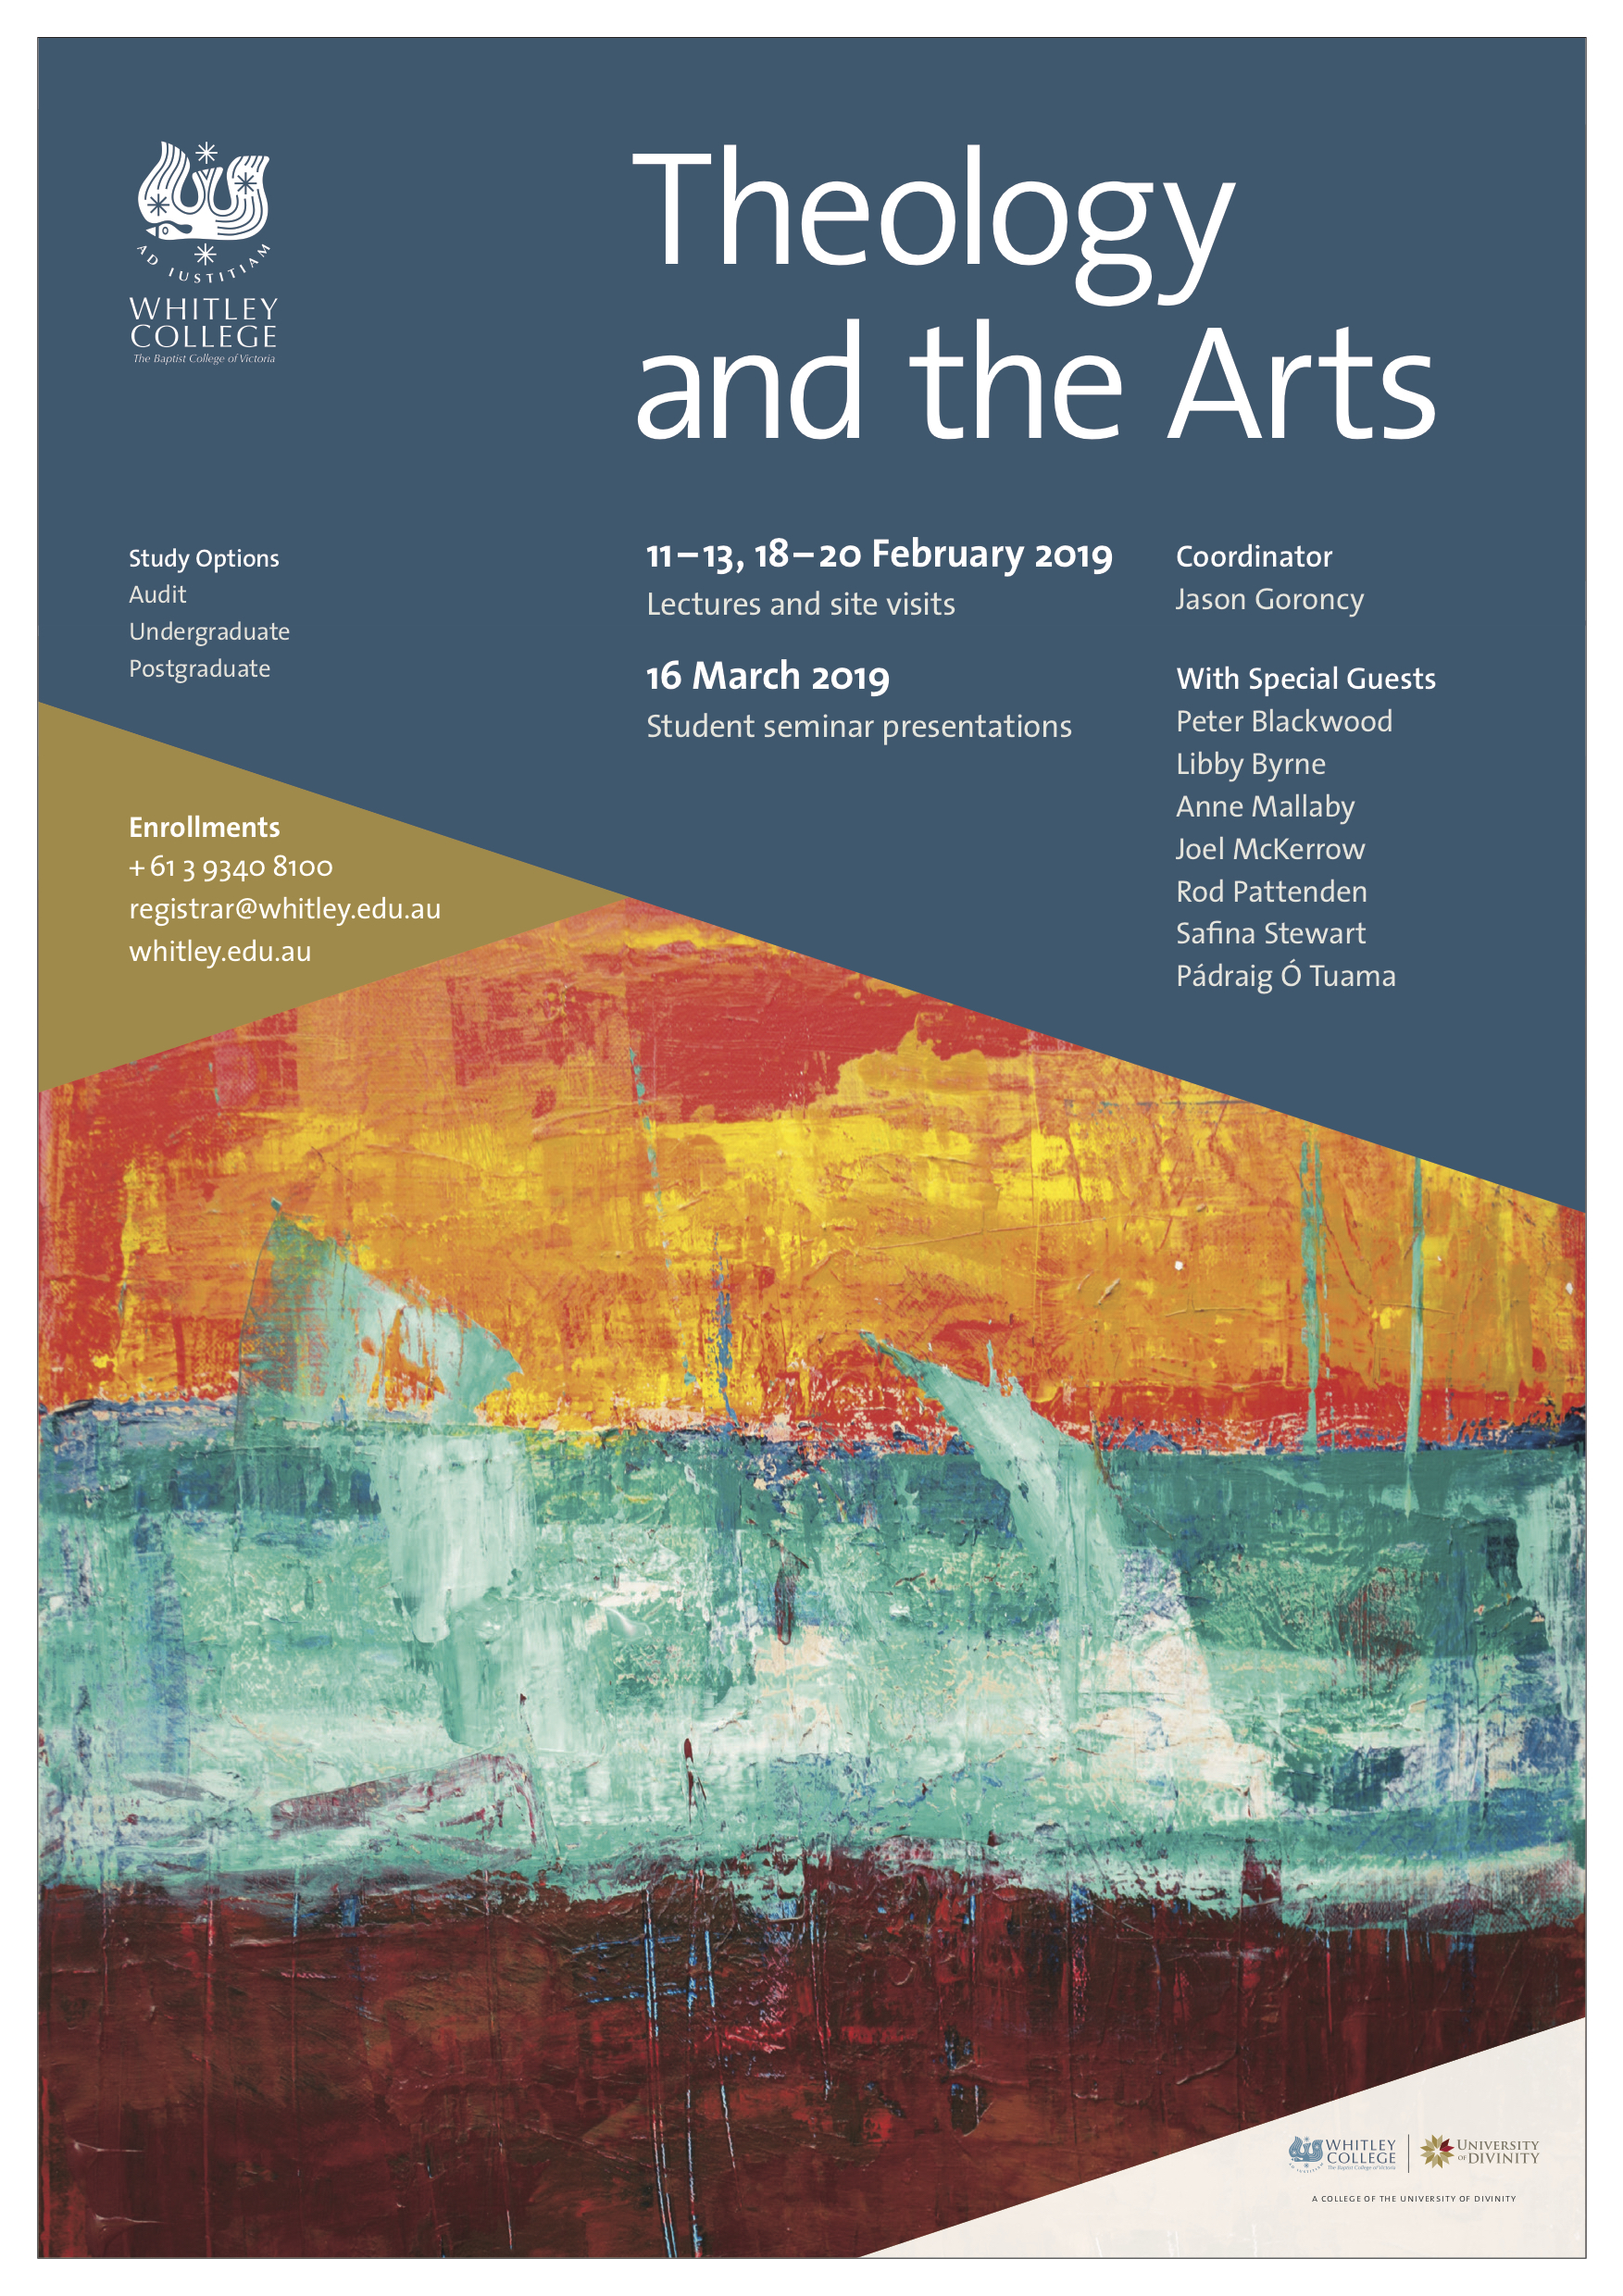 Theology and the Arts - Poster 2018.jpg